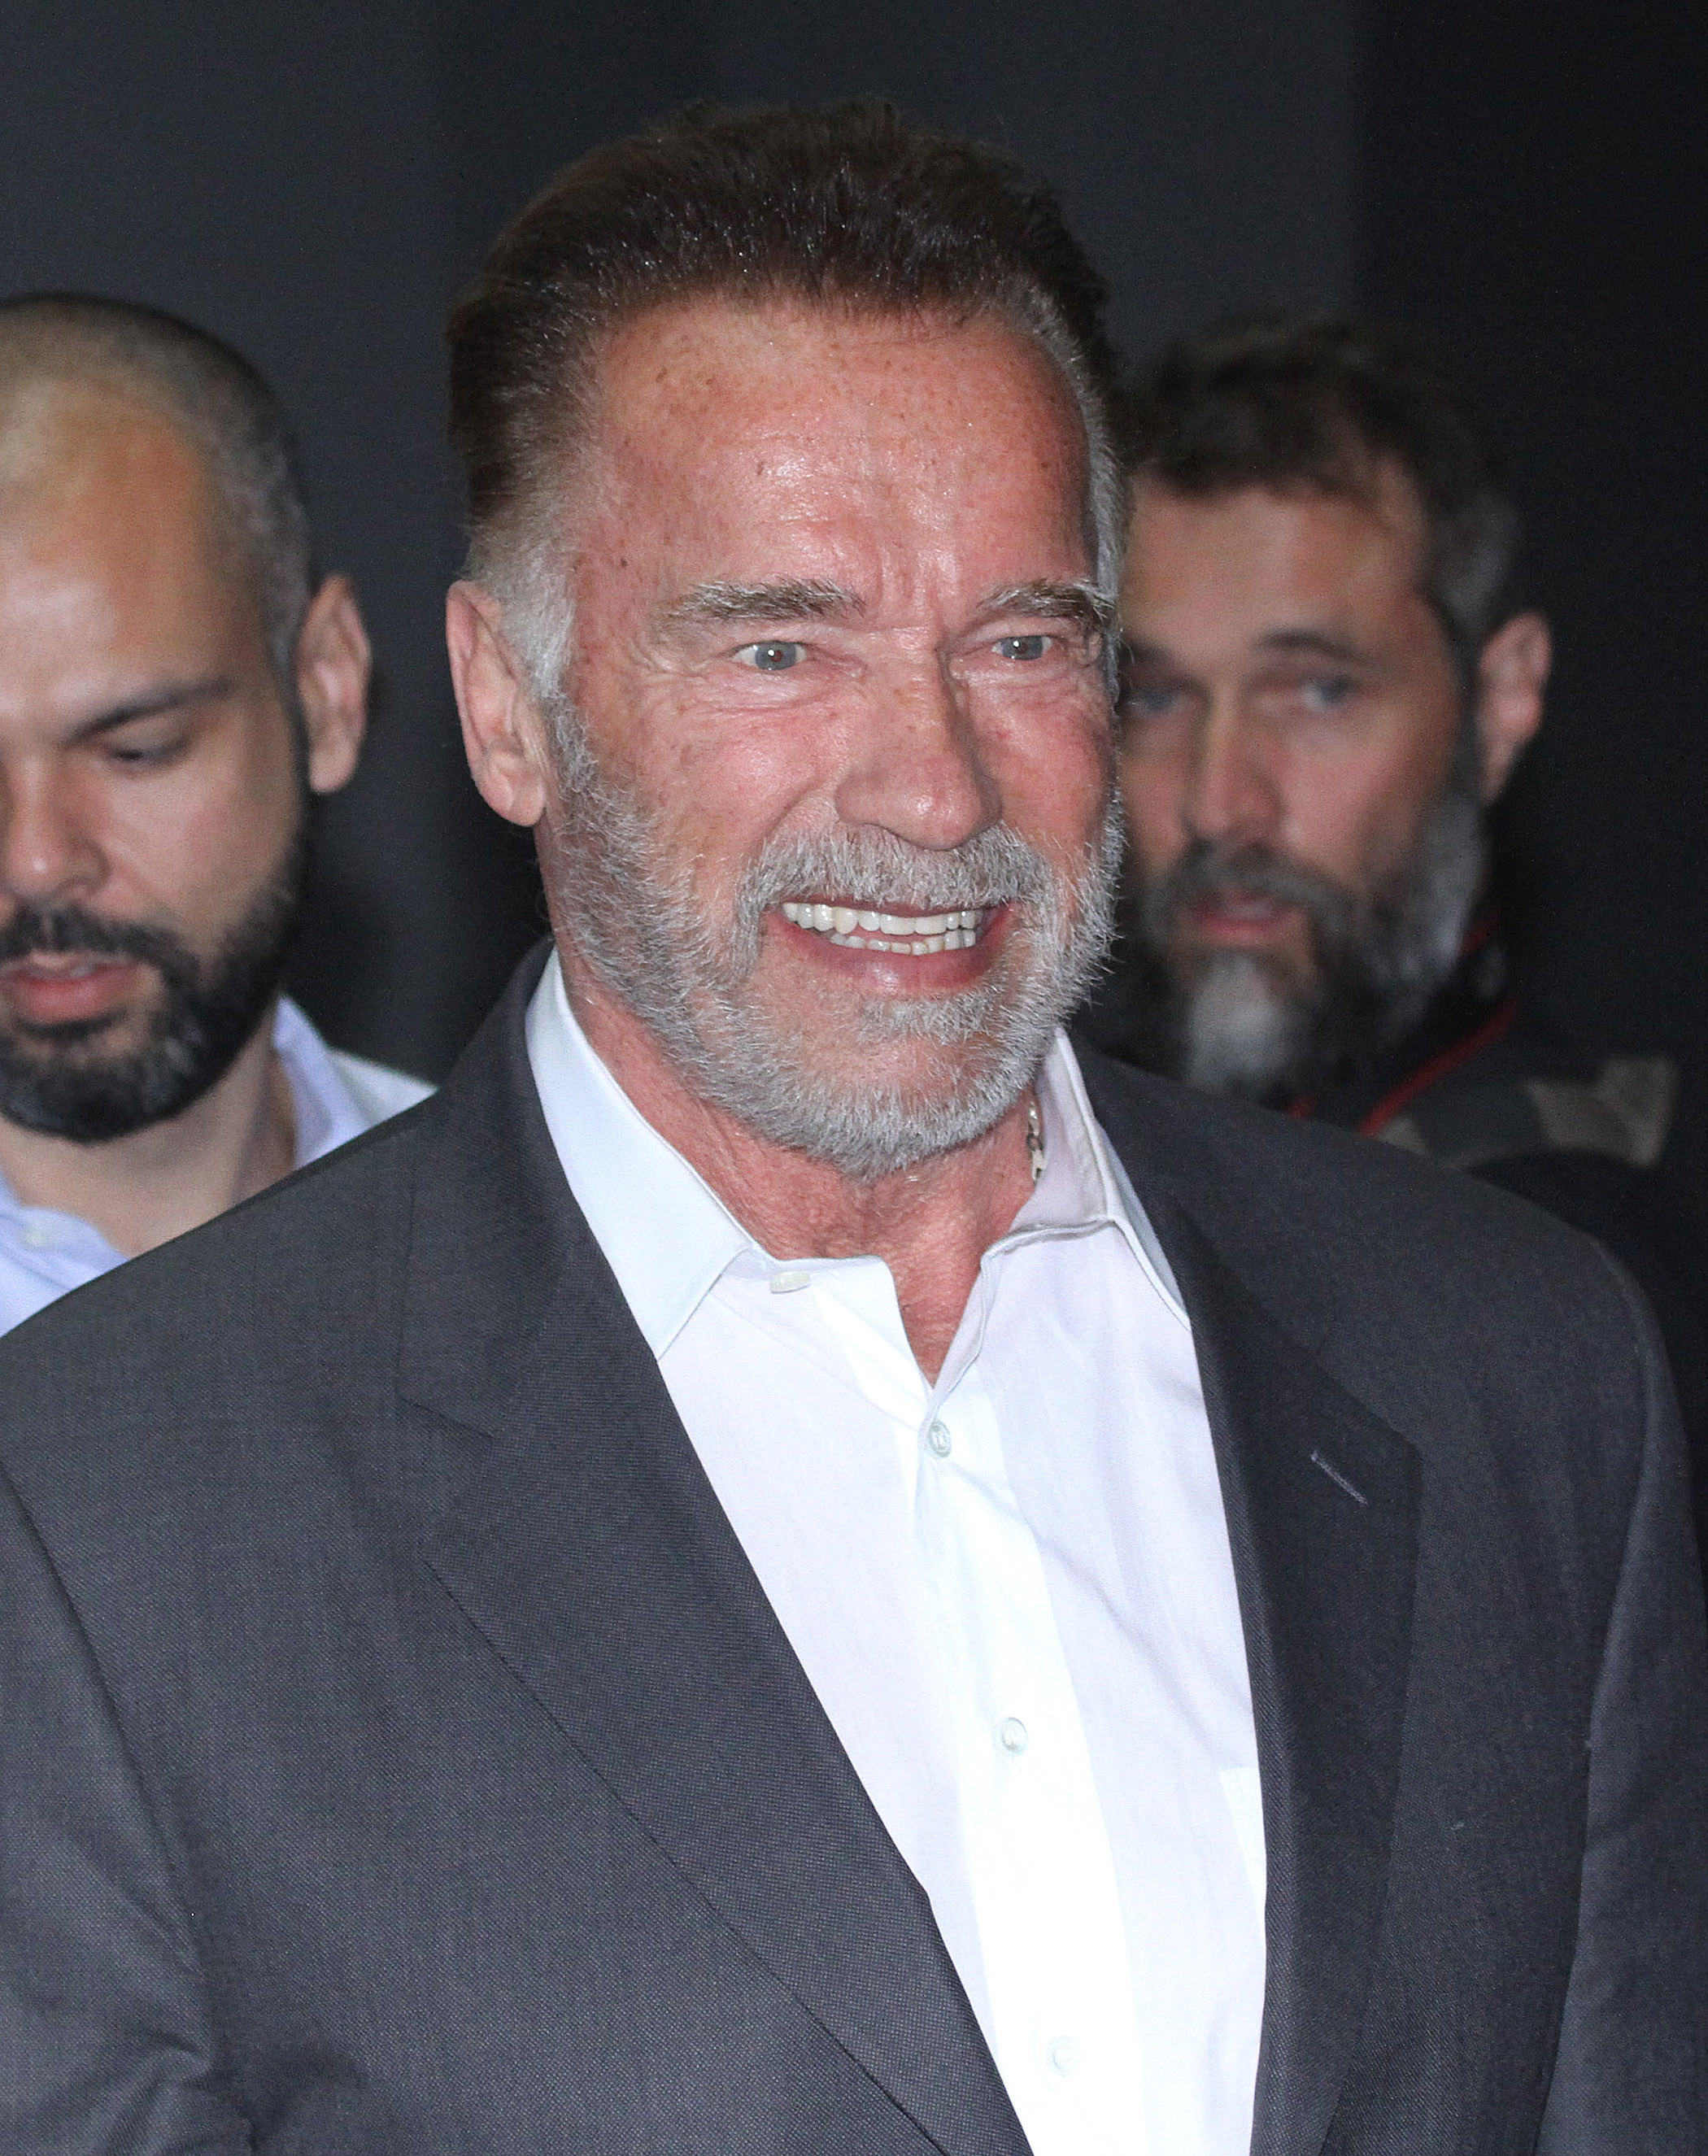 Arnold Schwarzenegger meets the Governor of Sao Paulo, Brazil, on April 14, 2019.